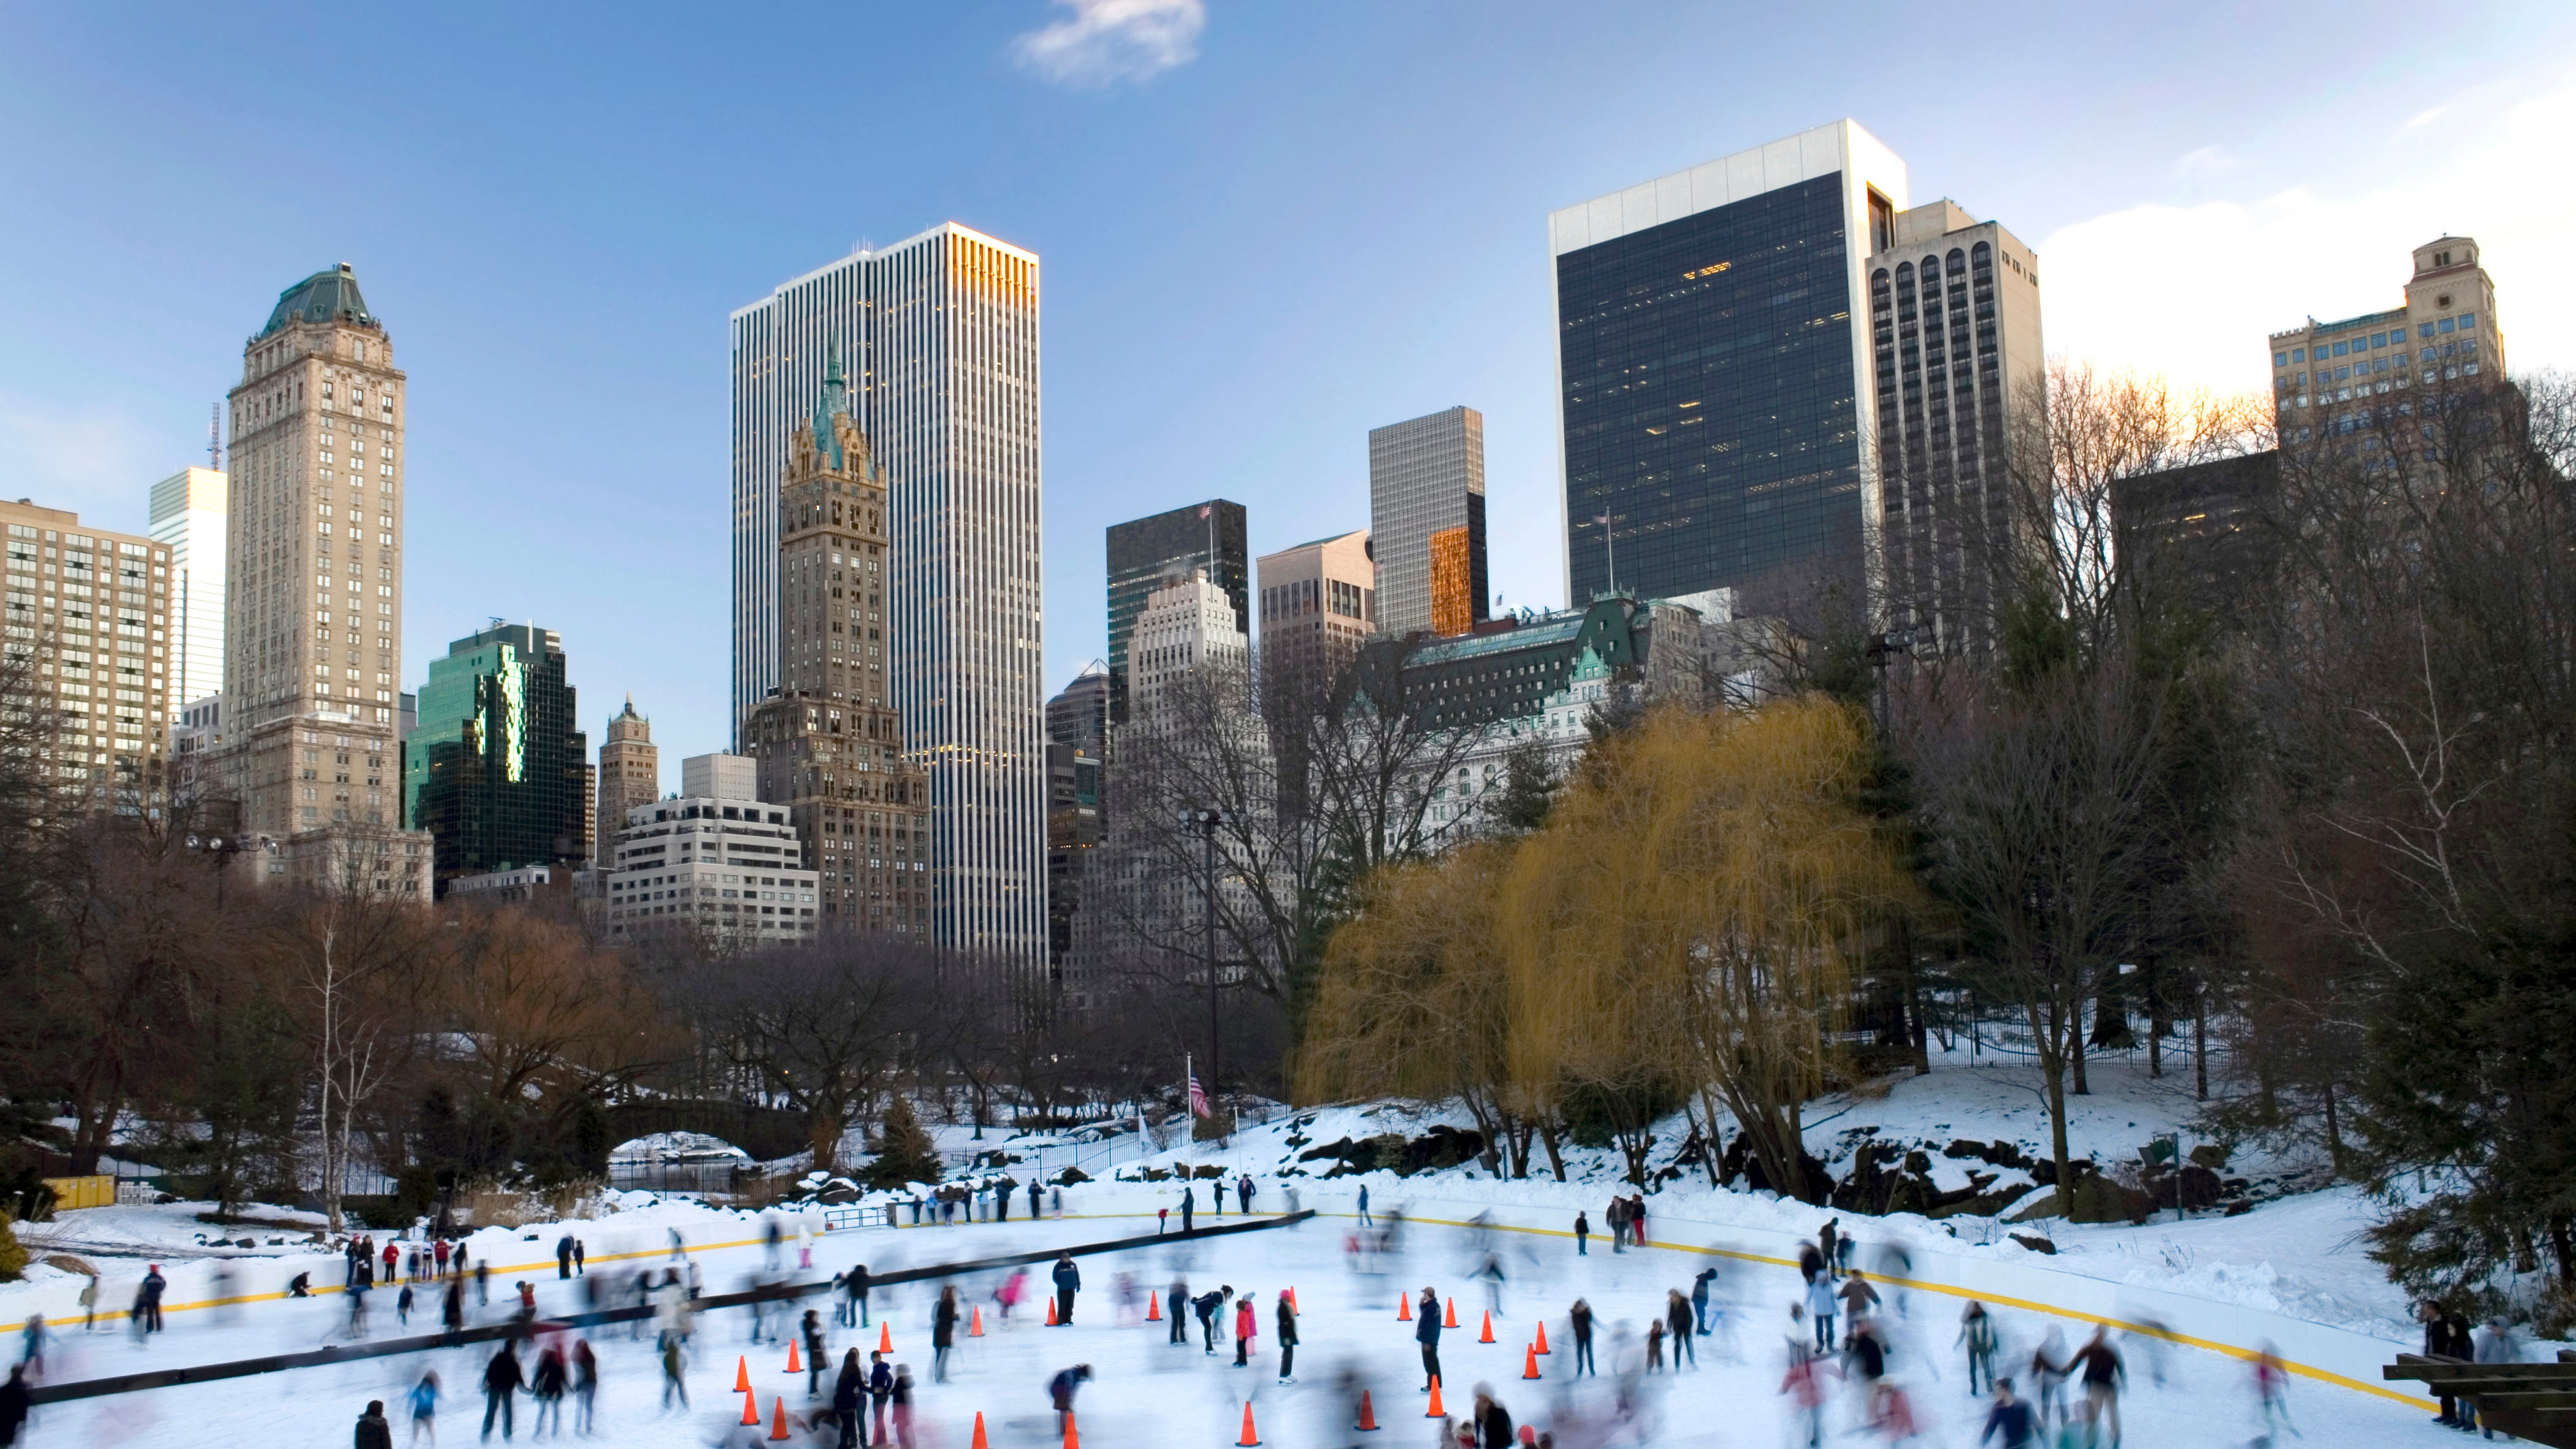 NYC seeks company to replace Trump Organization as manager of Central Park's Wollman Rink